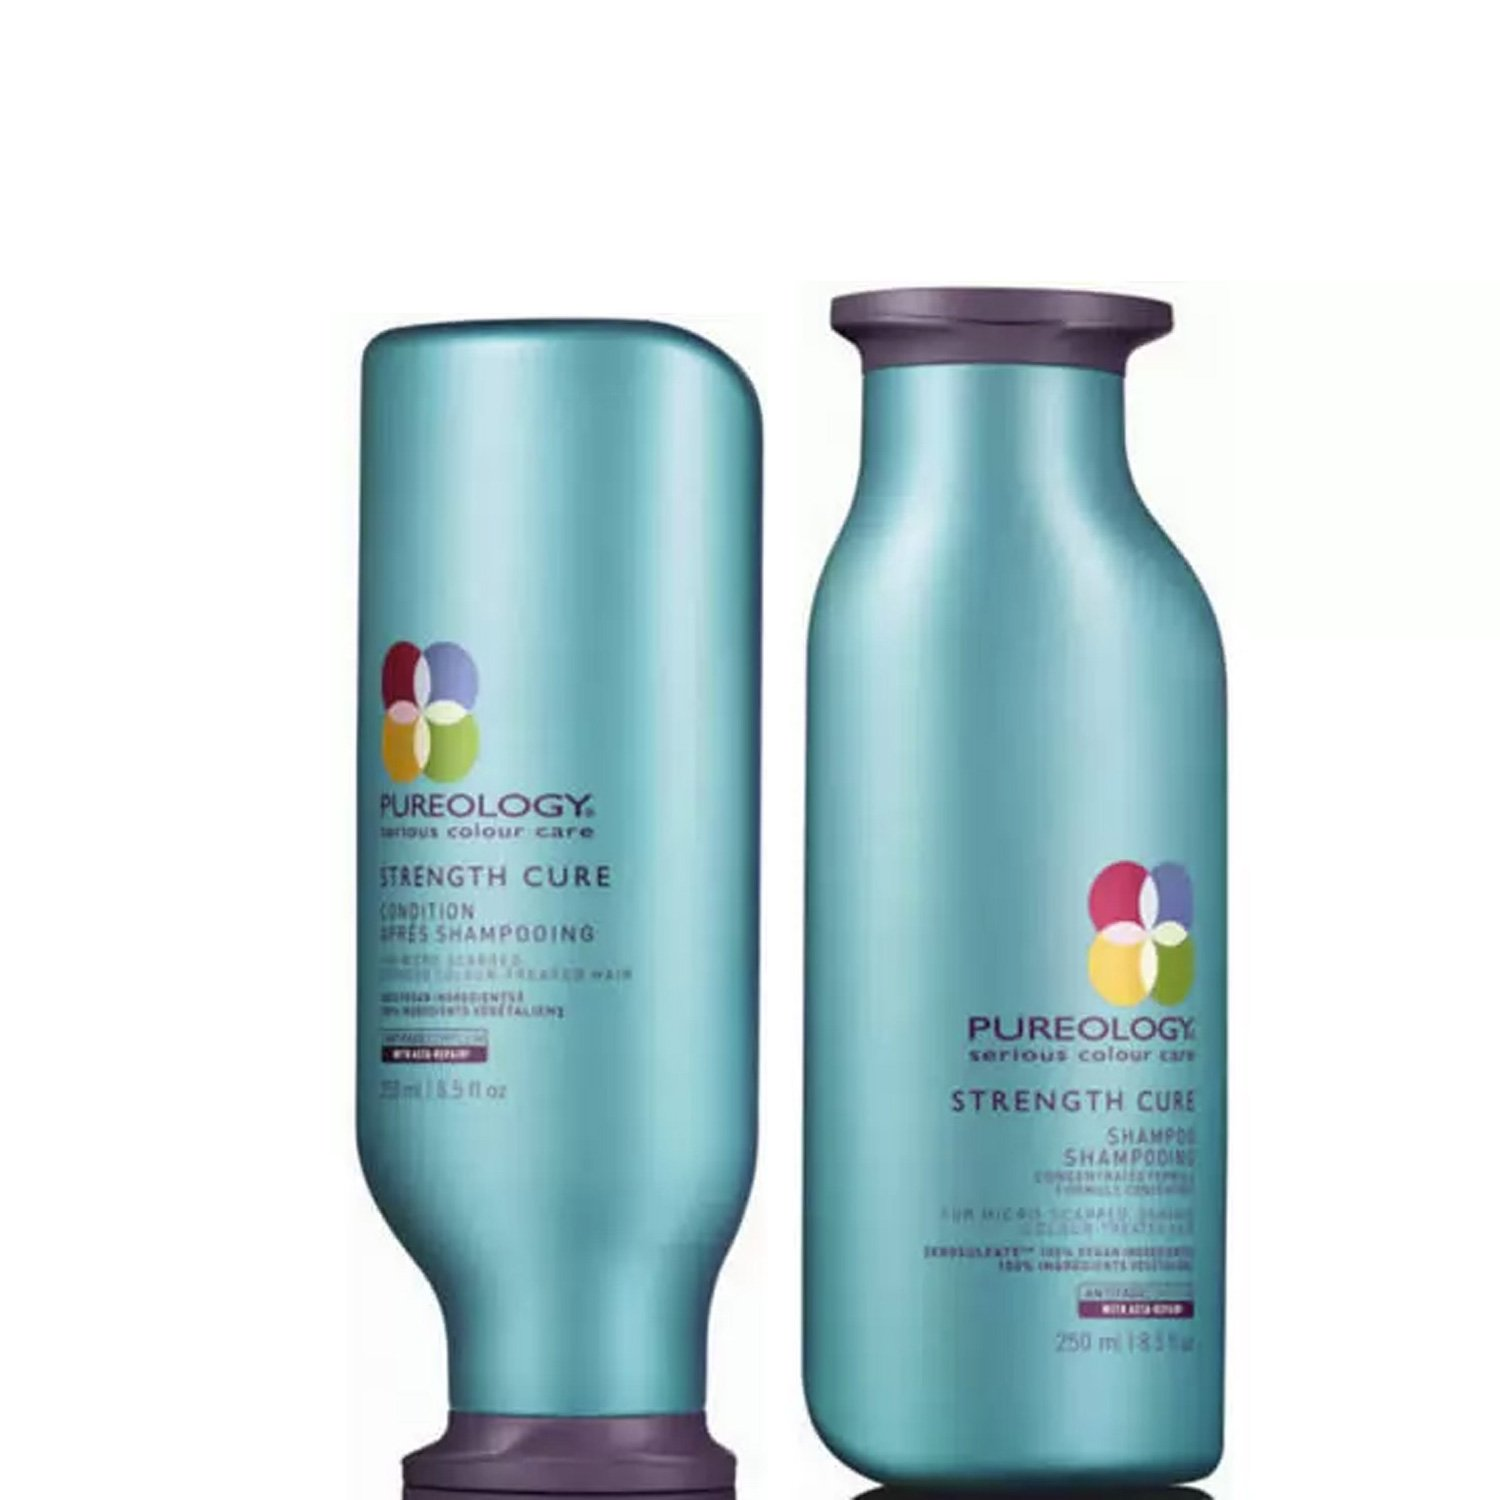 Pureology Strength Cure Shampoo and Conditioner Set, 8.5 Ounces Each